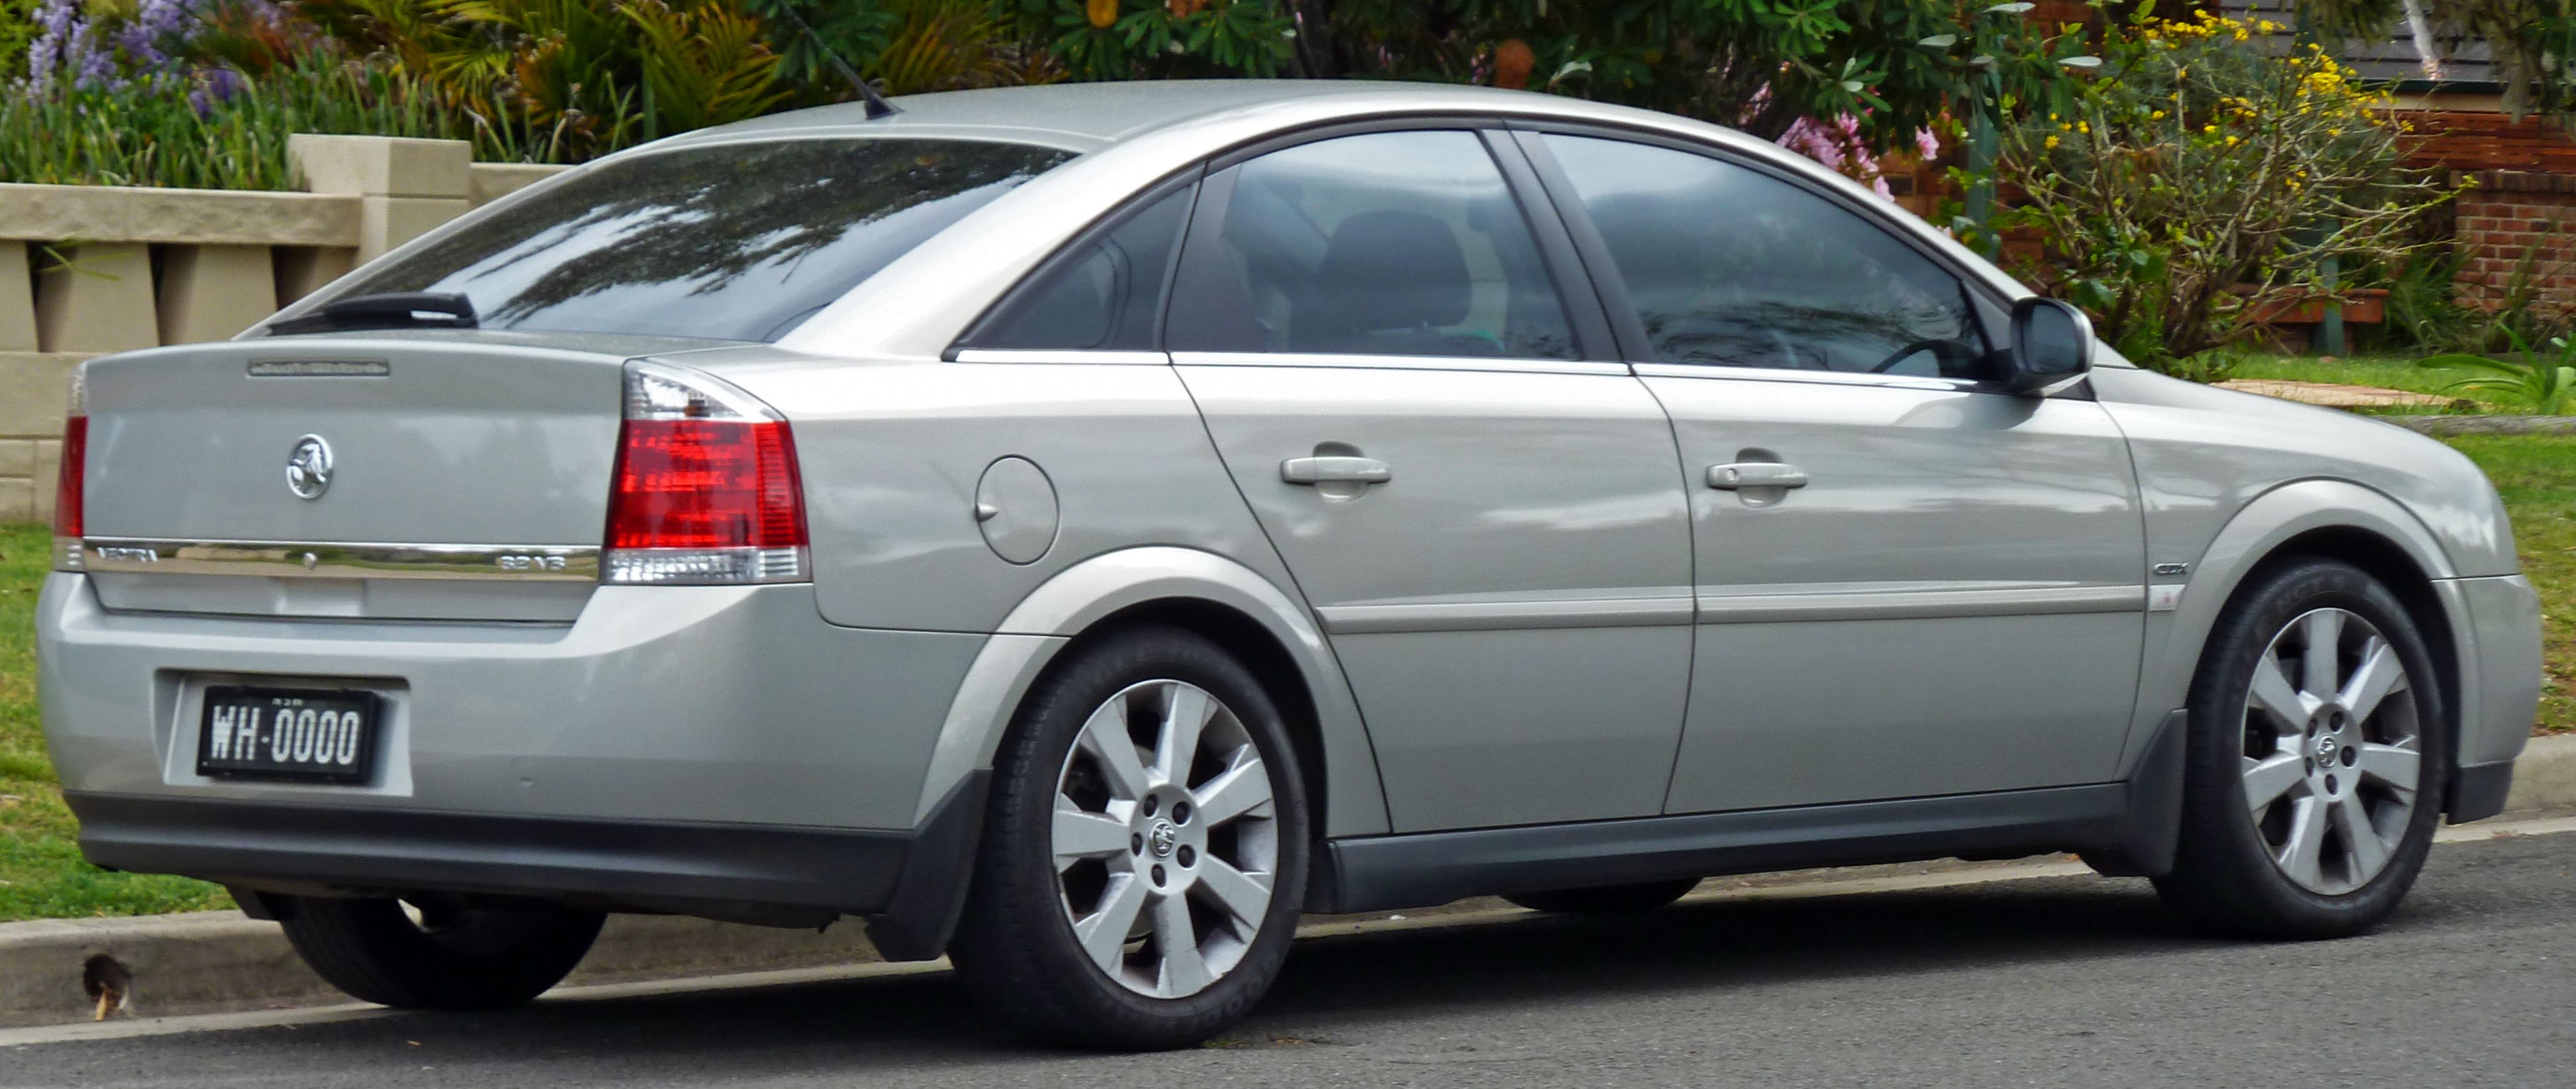 2005 Holden Vectra #14